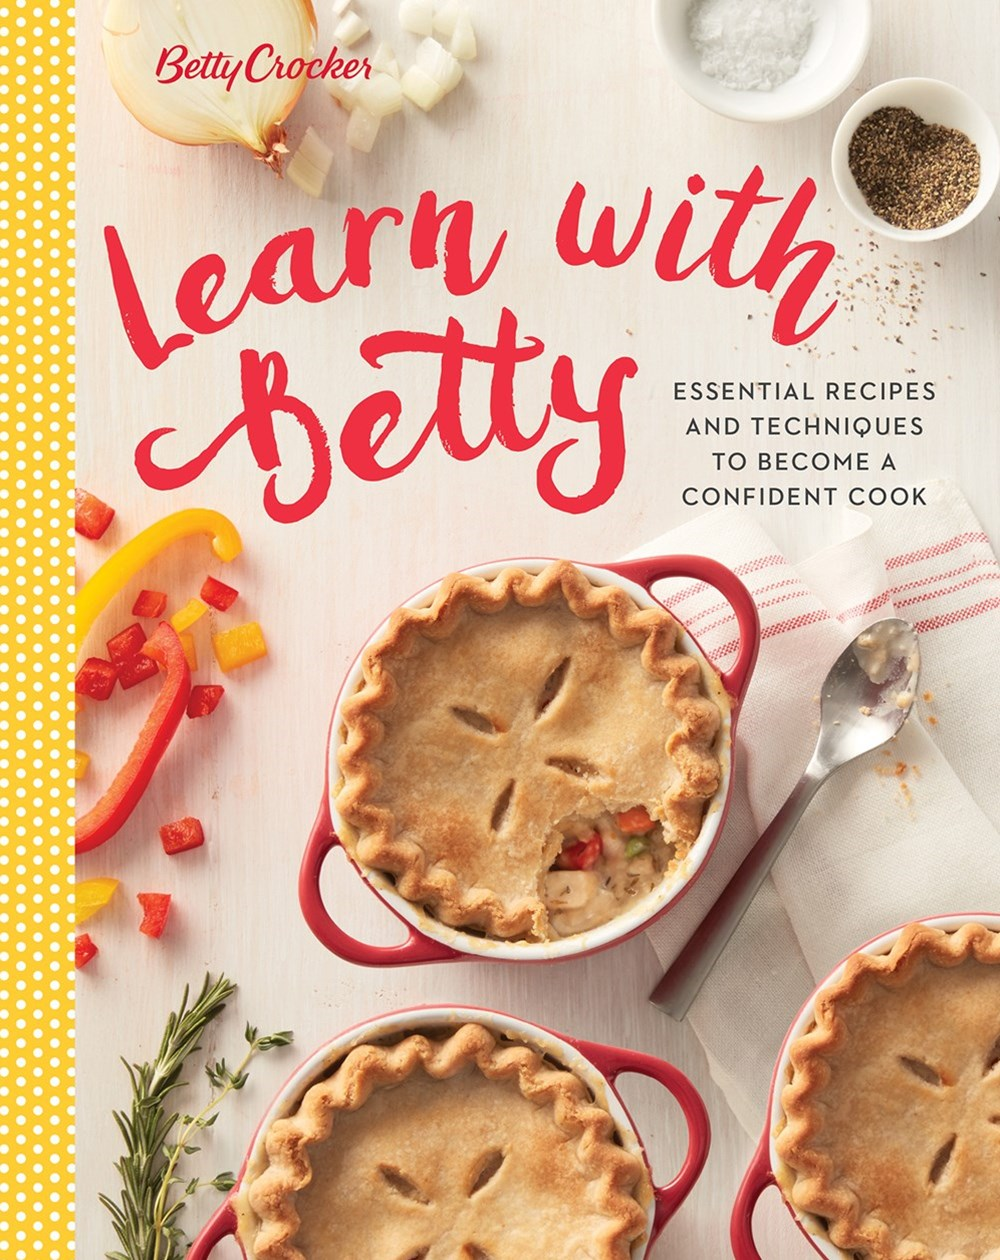 Betty Crocker Learn with Betty: Essential Recipes and Techniques to Become a Confident Cook